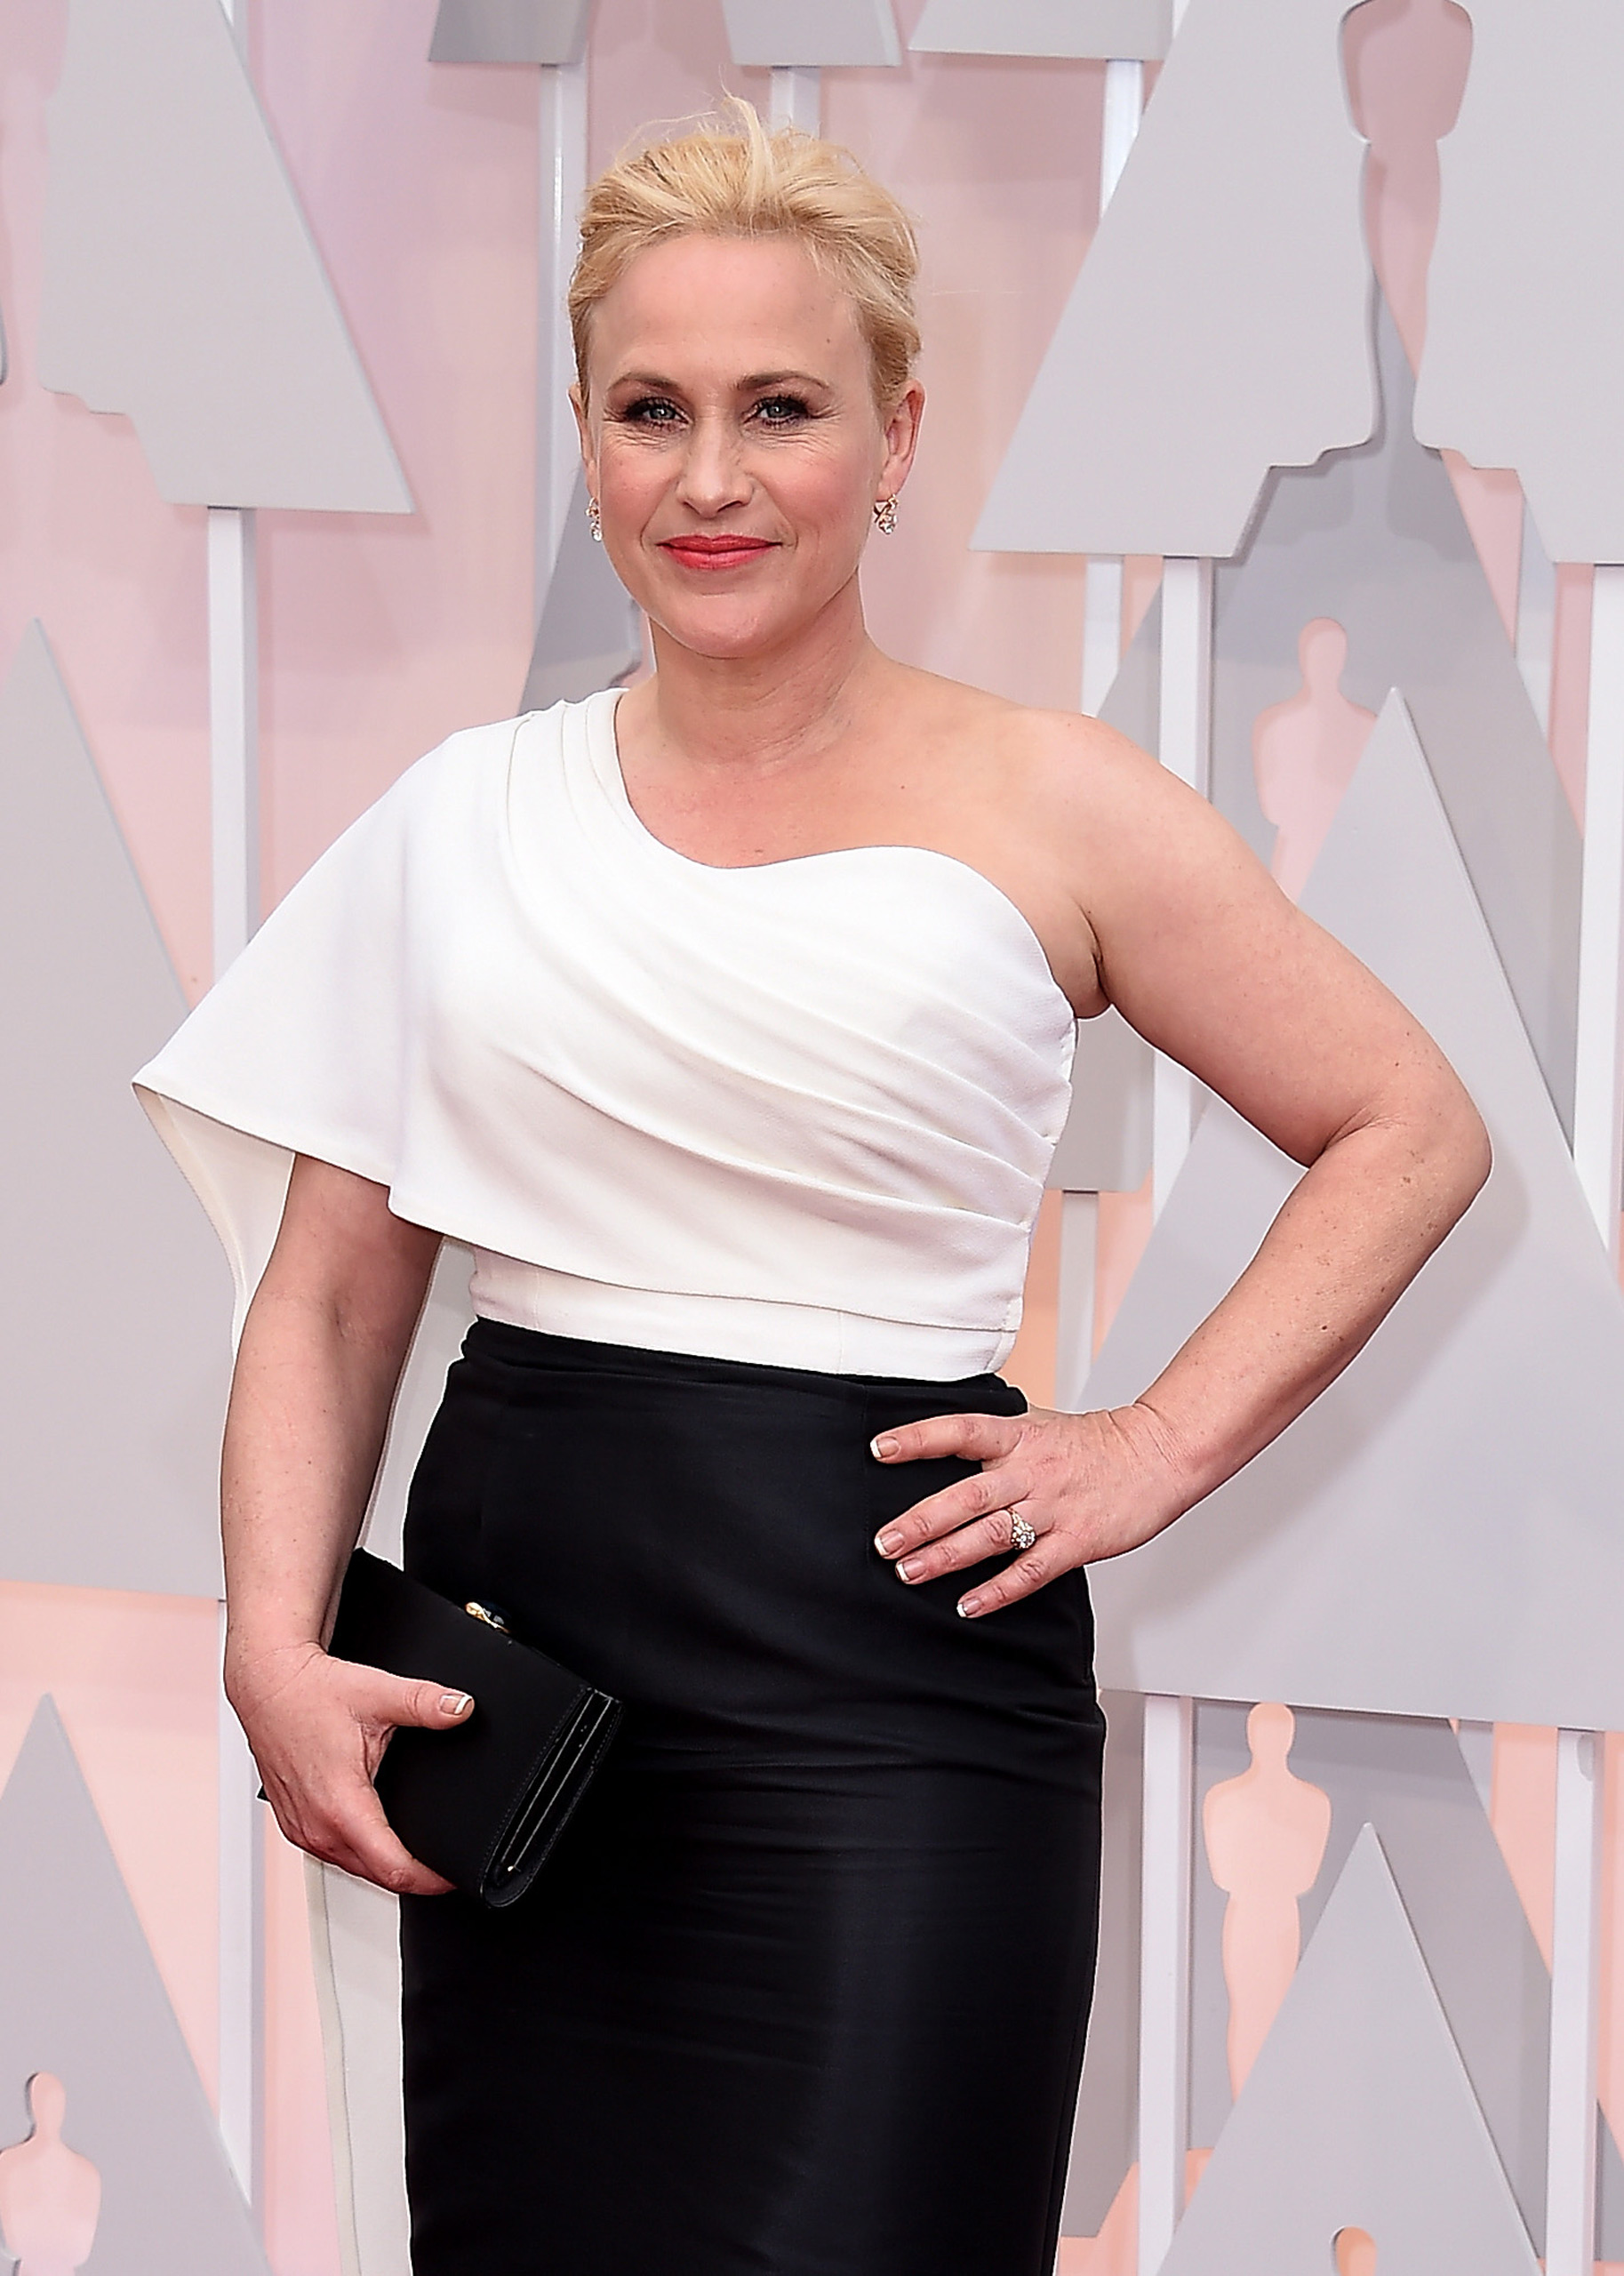 Patricia Arquette attends the 87th Annual Academy Awards on Feb. 22, 2015 in Hollywood, Calif.